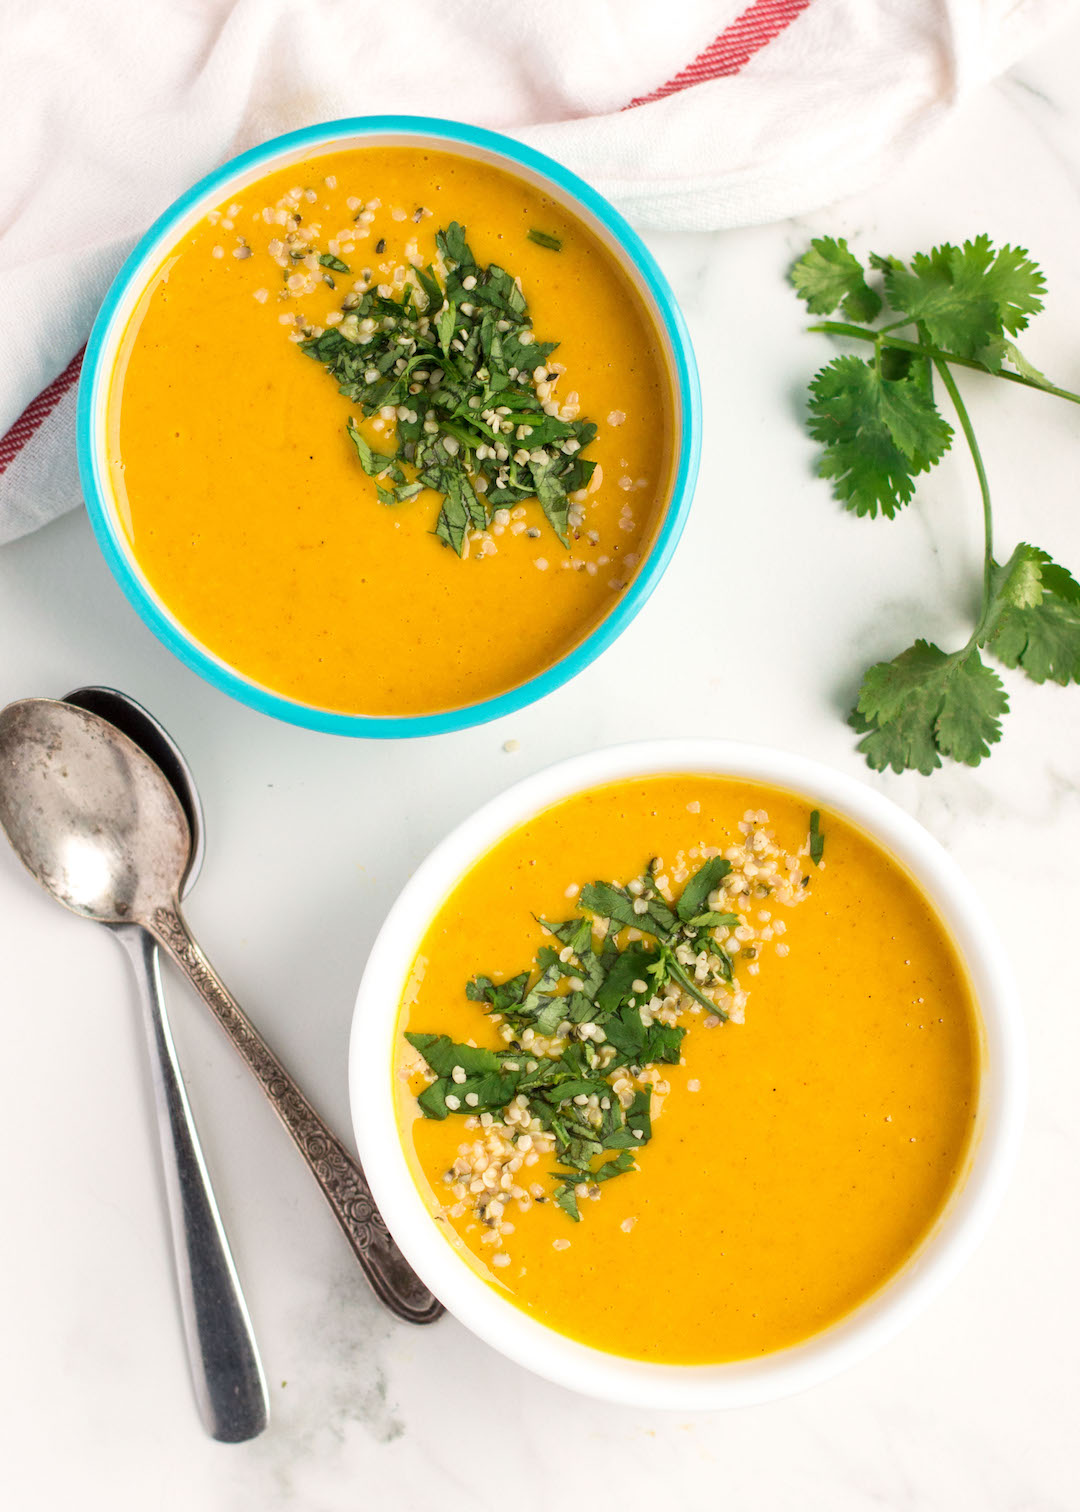 A curried butternut squash and apple soup recipe that's creamy and sweet and full of flavour. This is the perfect gluten free, vegan and easy to make soup to warm up with on a cool fall night.